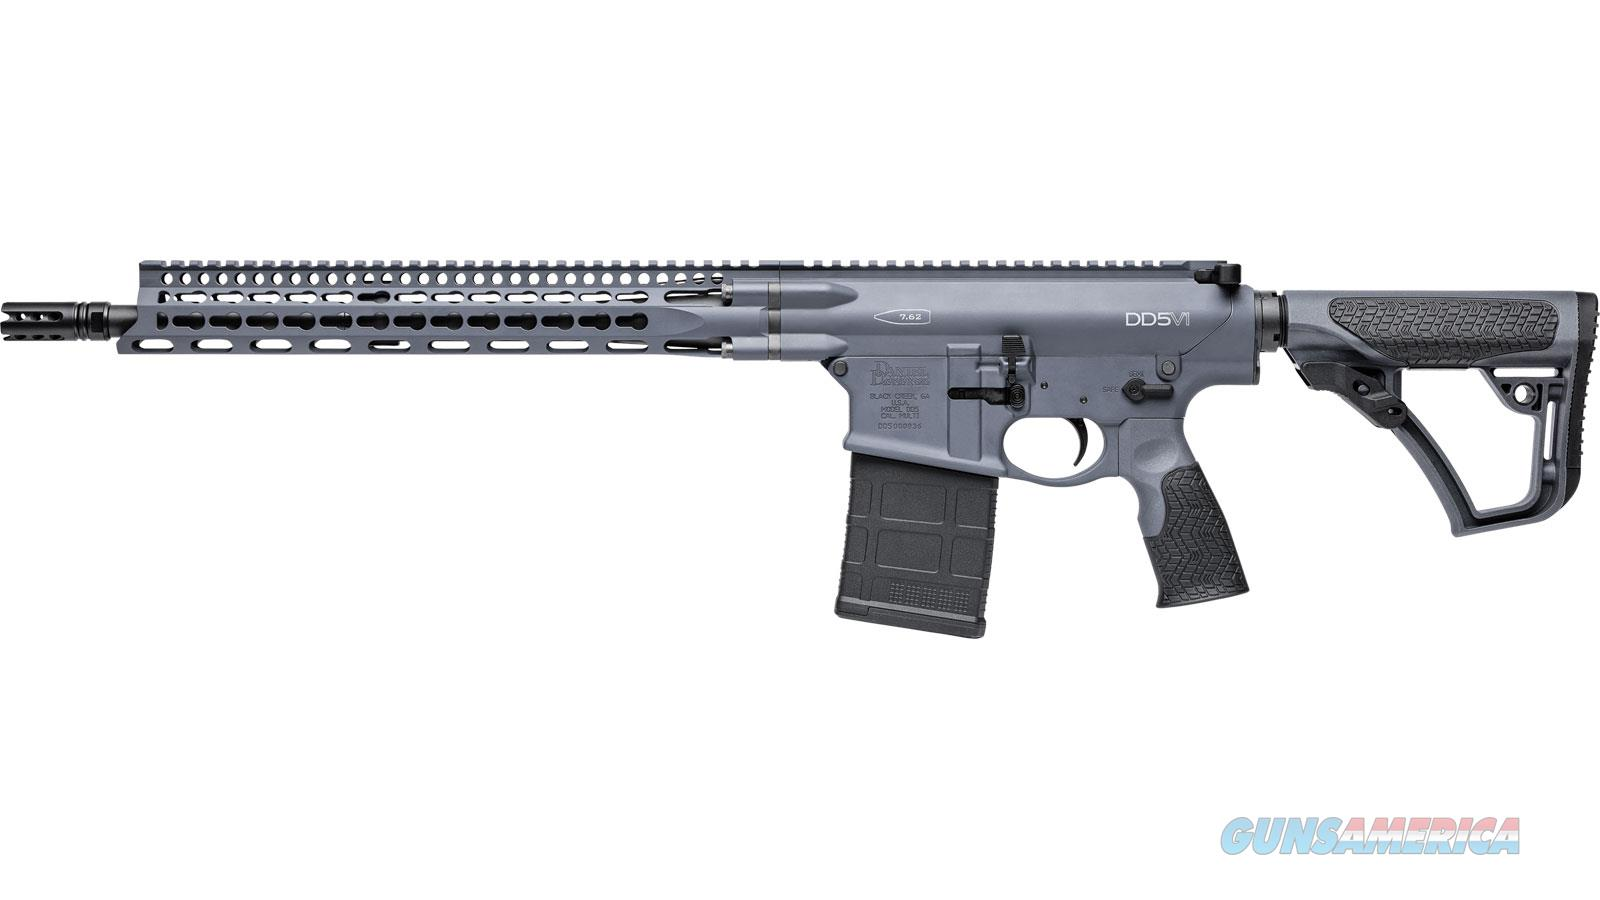 "Daniel Defense Dd5v1 Tornado 308 16"" 25Rd 0215007337047  Guns > Rifles > D Misc Rifles"